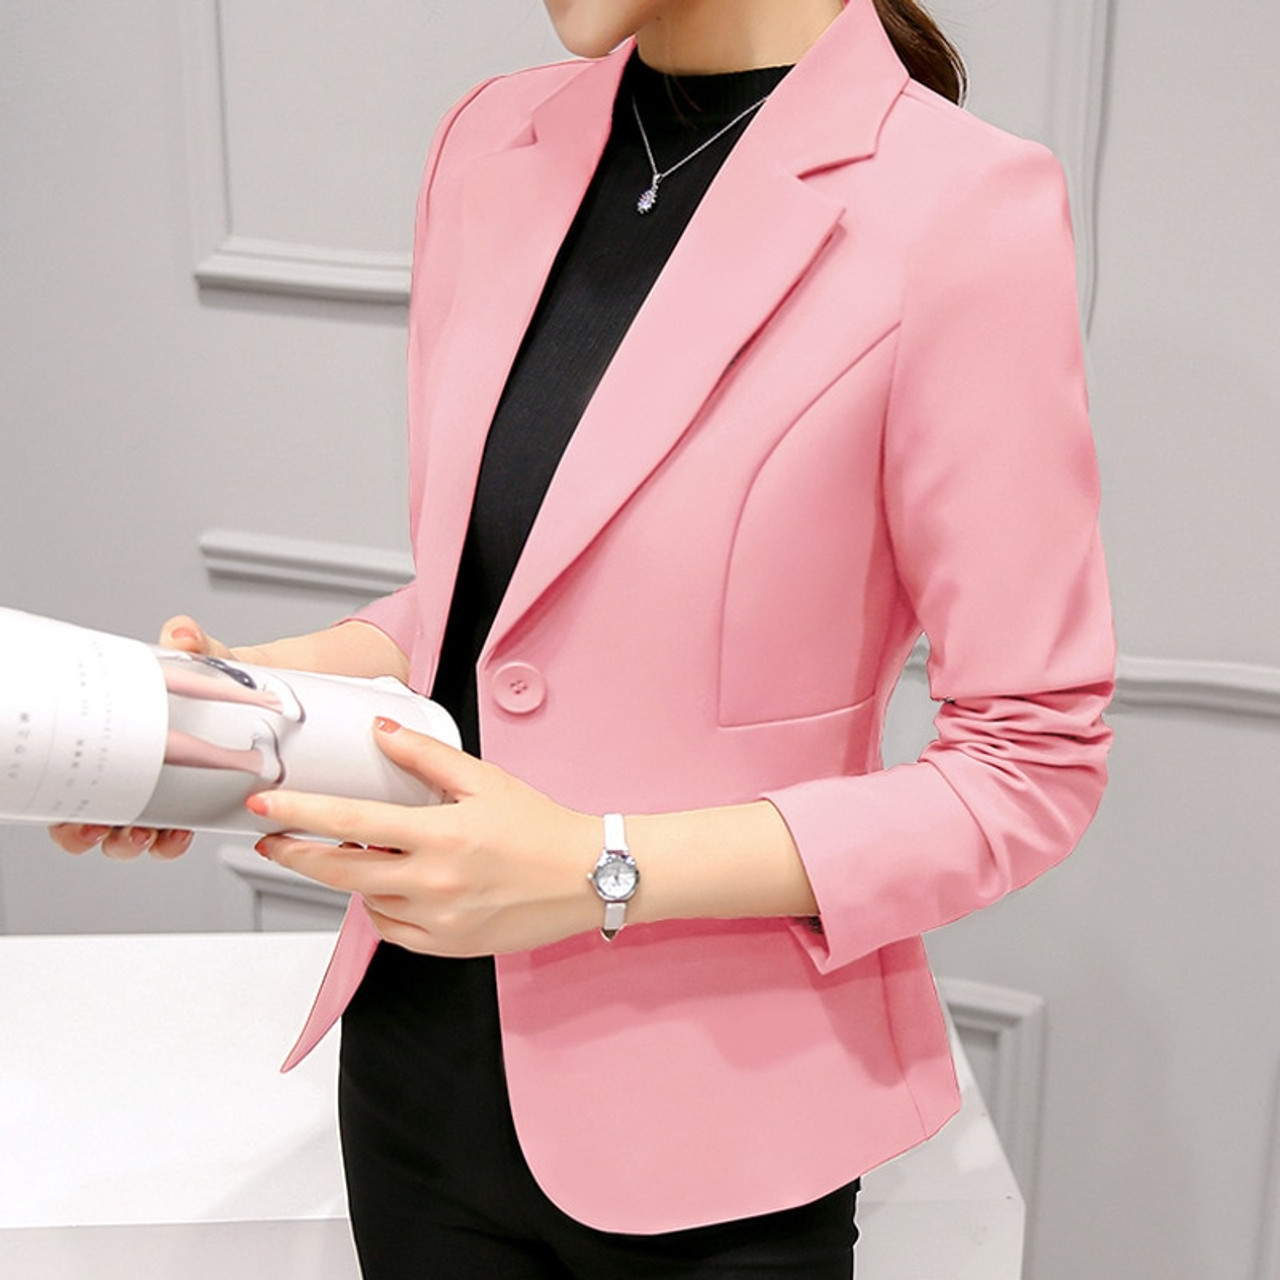 3bba9bf9f33c6 ... 2018 Women s Blazer Pink Long Sleeve Blazers Solid One Button Coat Slim Office  Lady Jacket Female ...